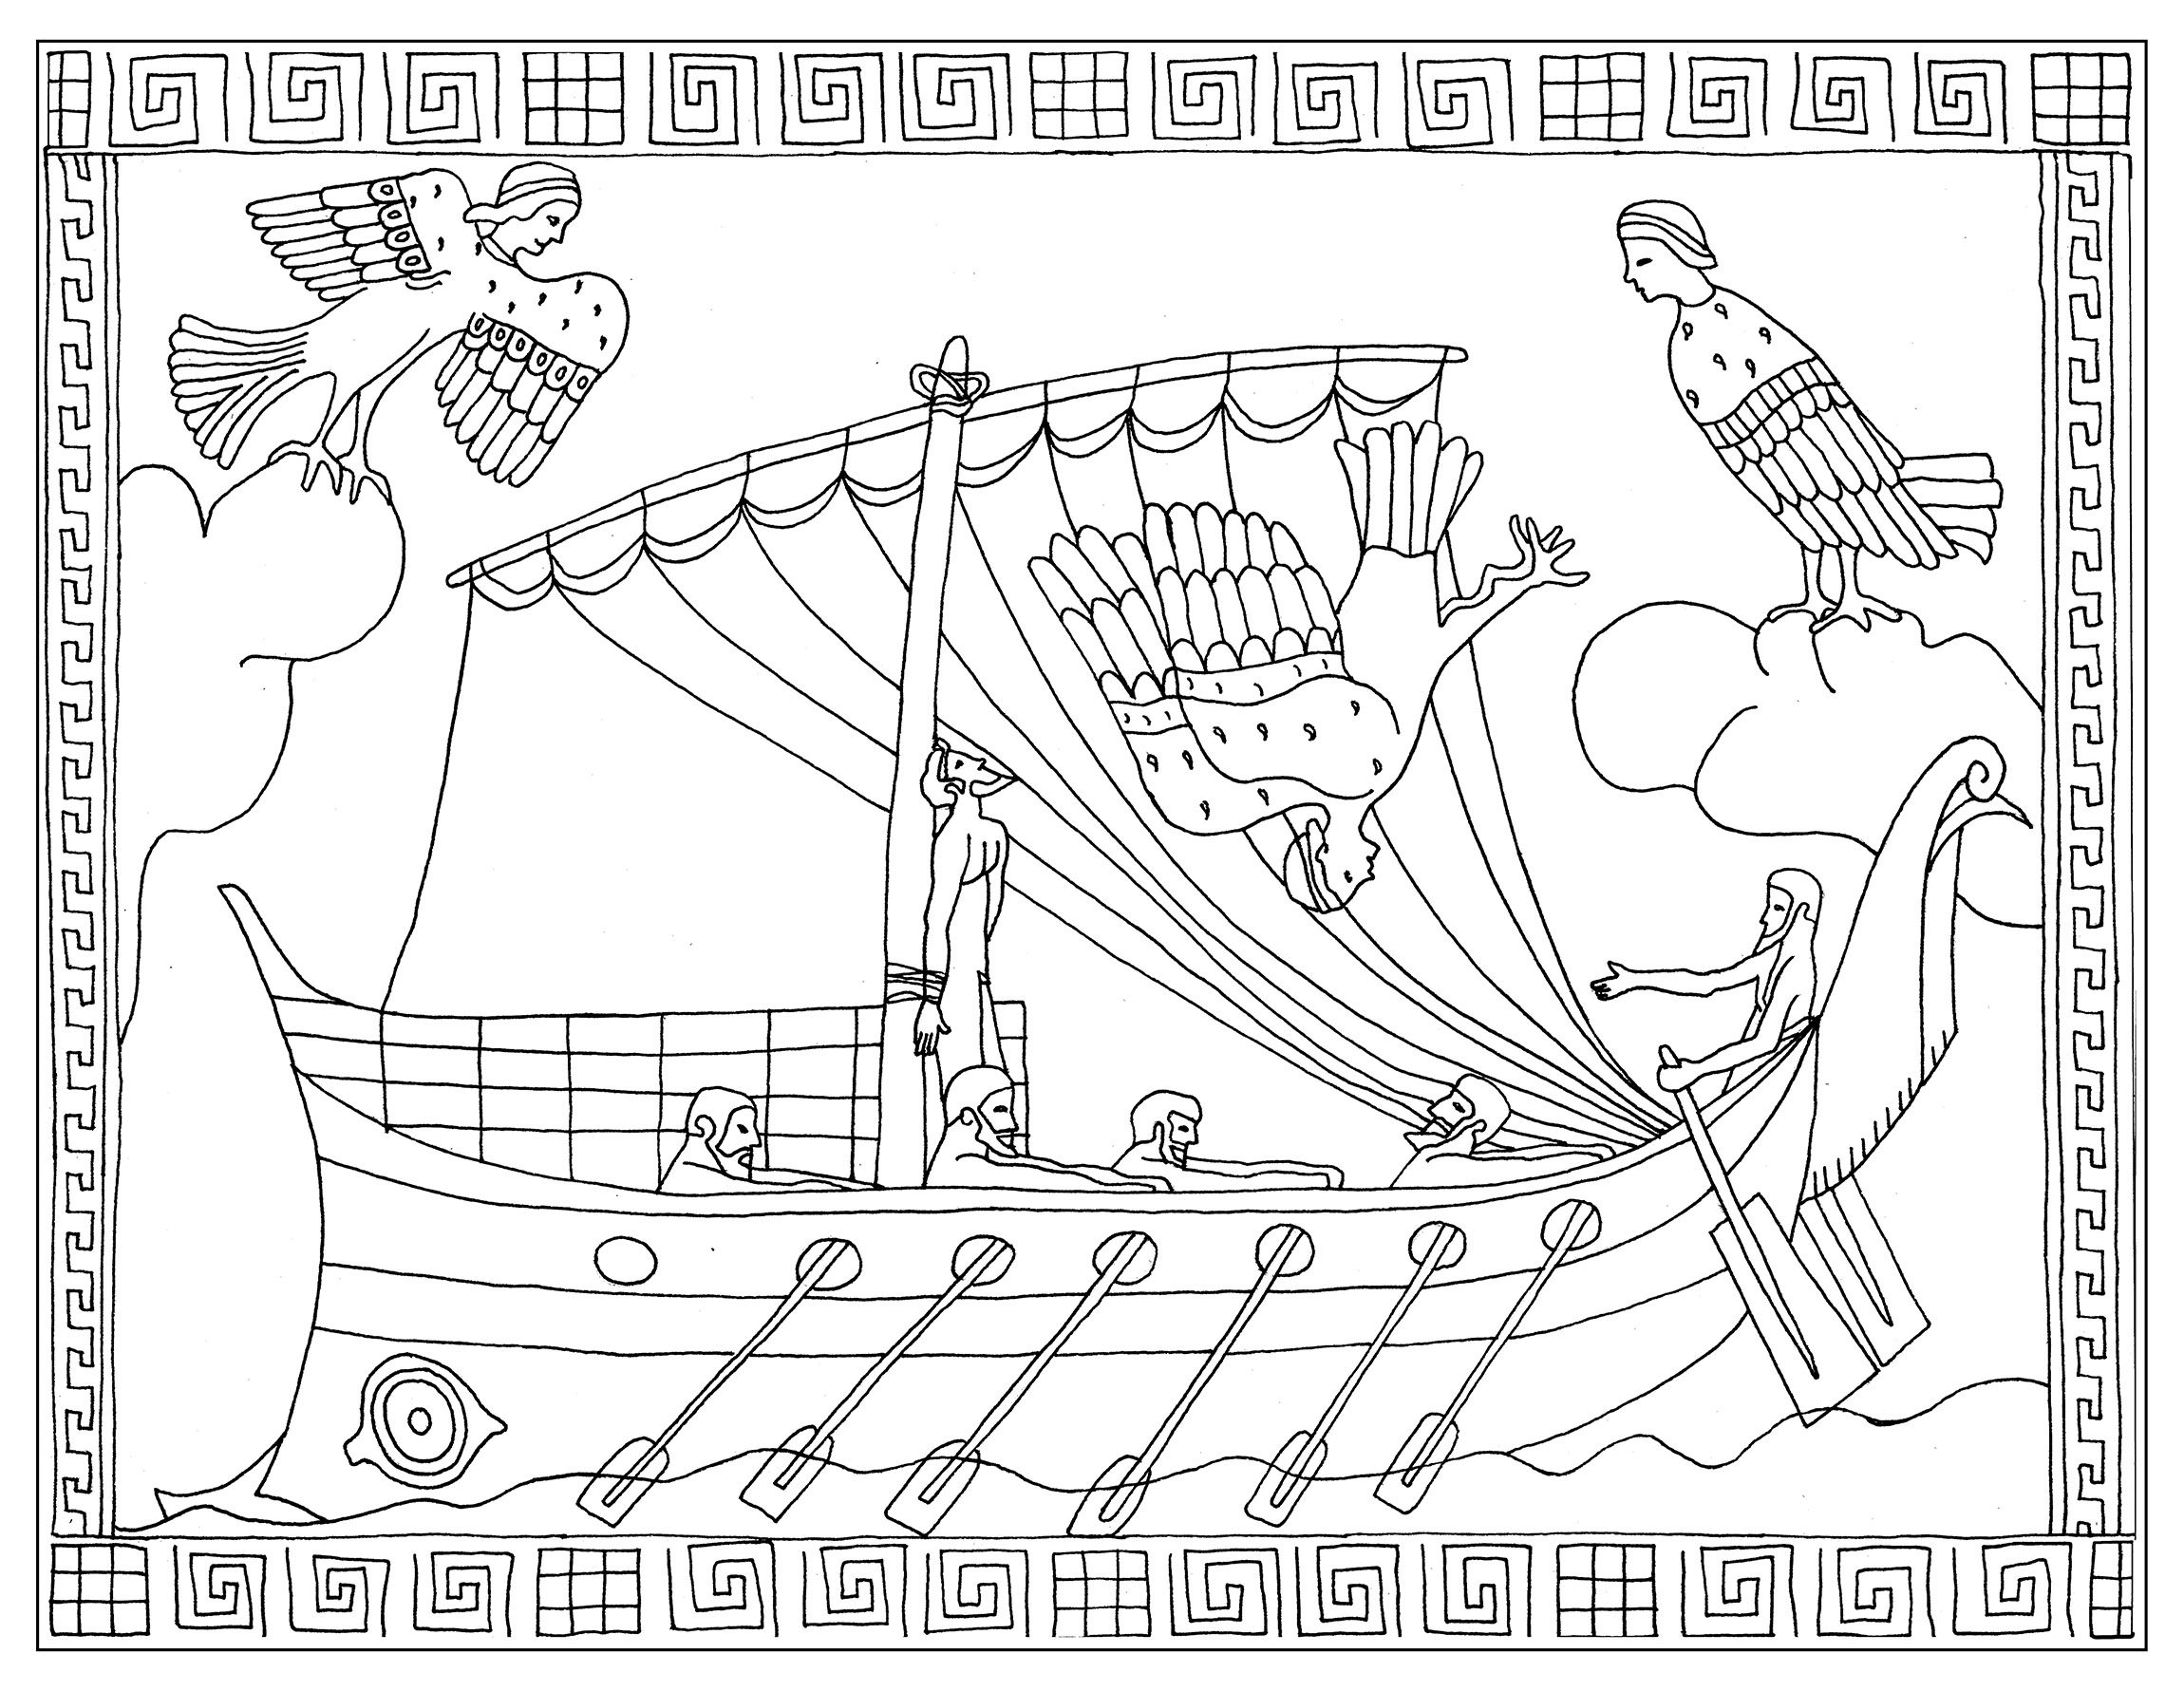 Coloring pages adults mermaids - Coloring Page Inspired By A Vase Representing The Episode Of Ulysses And The Sirens Stamnos